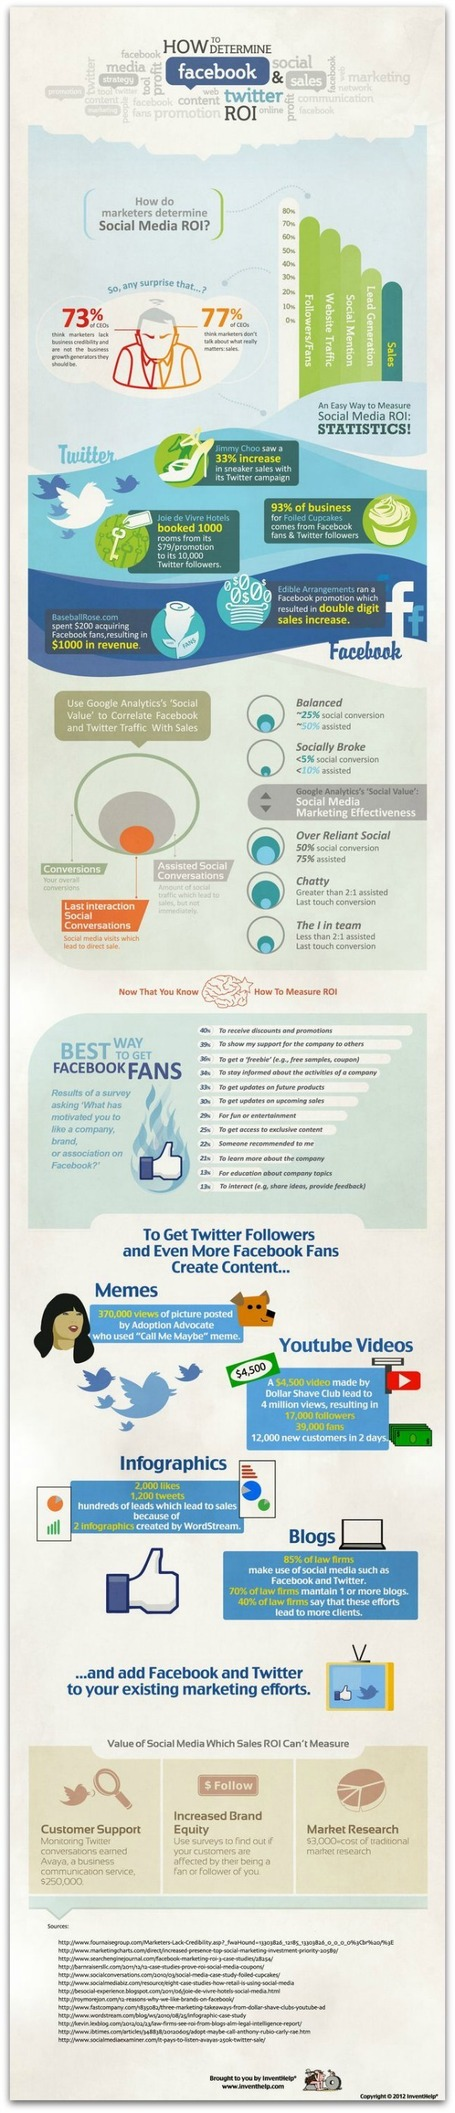 Infographic: How to measure Facebook and Twitter ROI | Twitter Stats, Strategies + Tips | Scoop.it